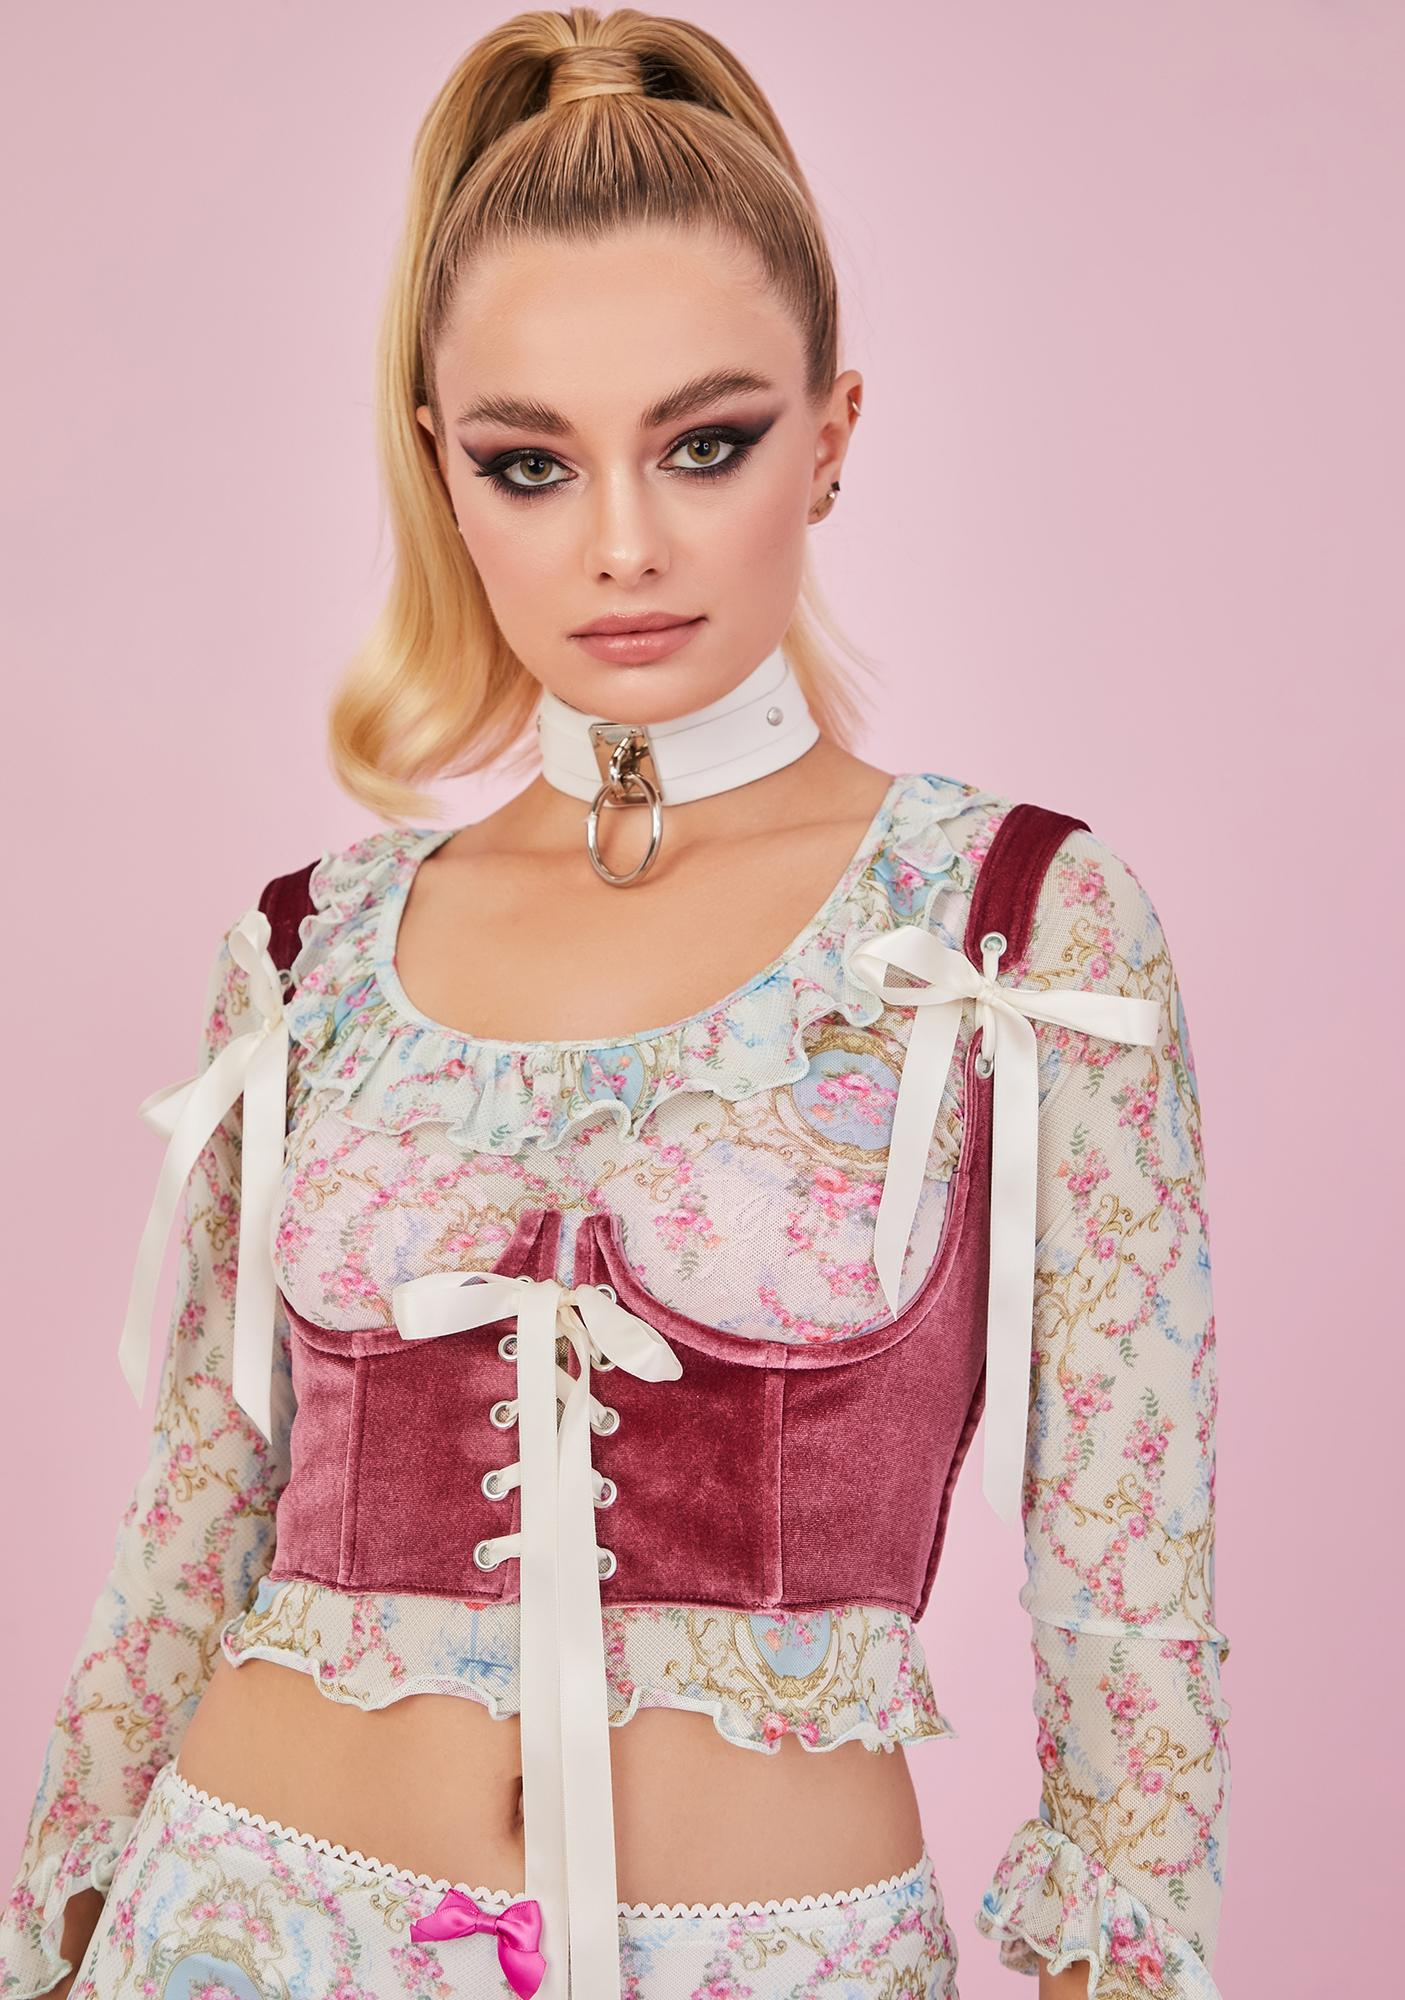 Sugar Thrillz Blush My Beloved Velvet Underbust Corset Top